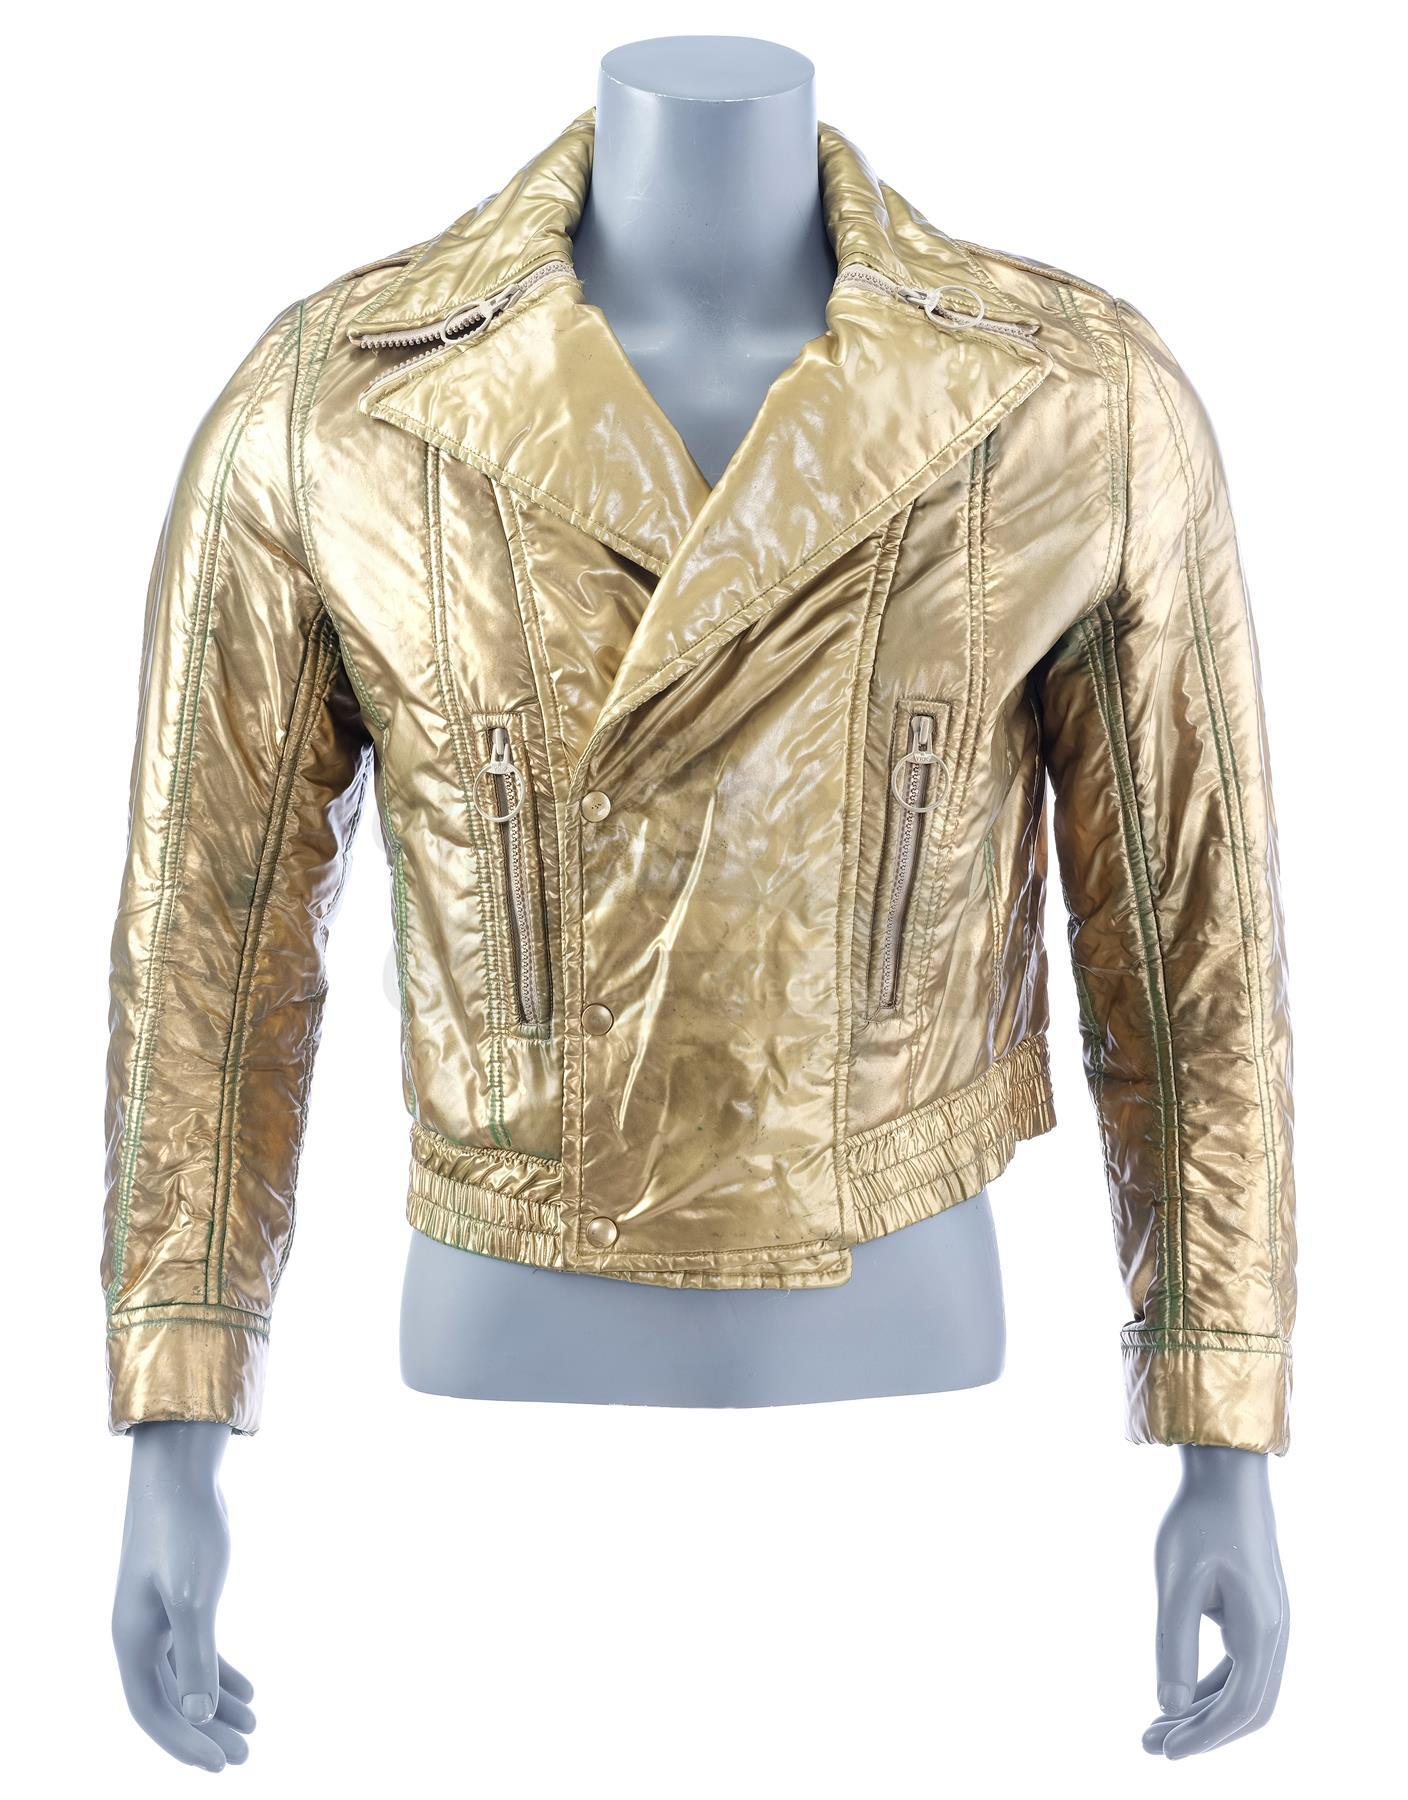 Lot # 46: BUCK ROGERS IN THE 25TH CENTURY - Captain Buck Rogers' (Gil Gerard) Gold Jacket